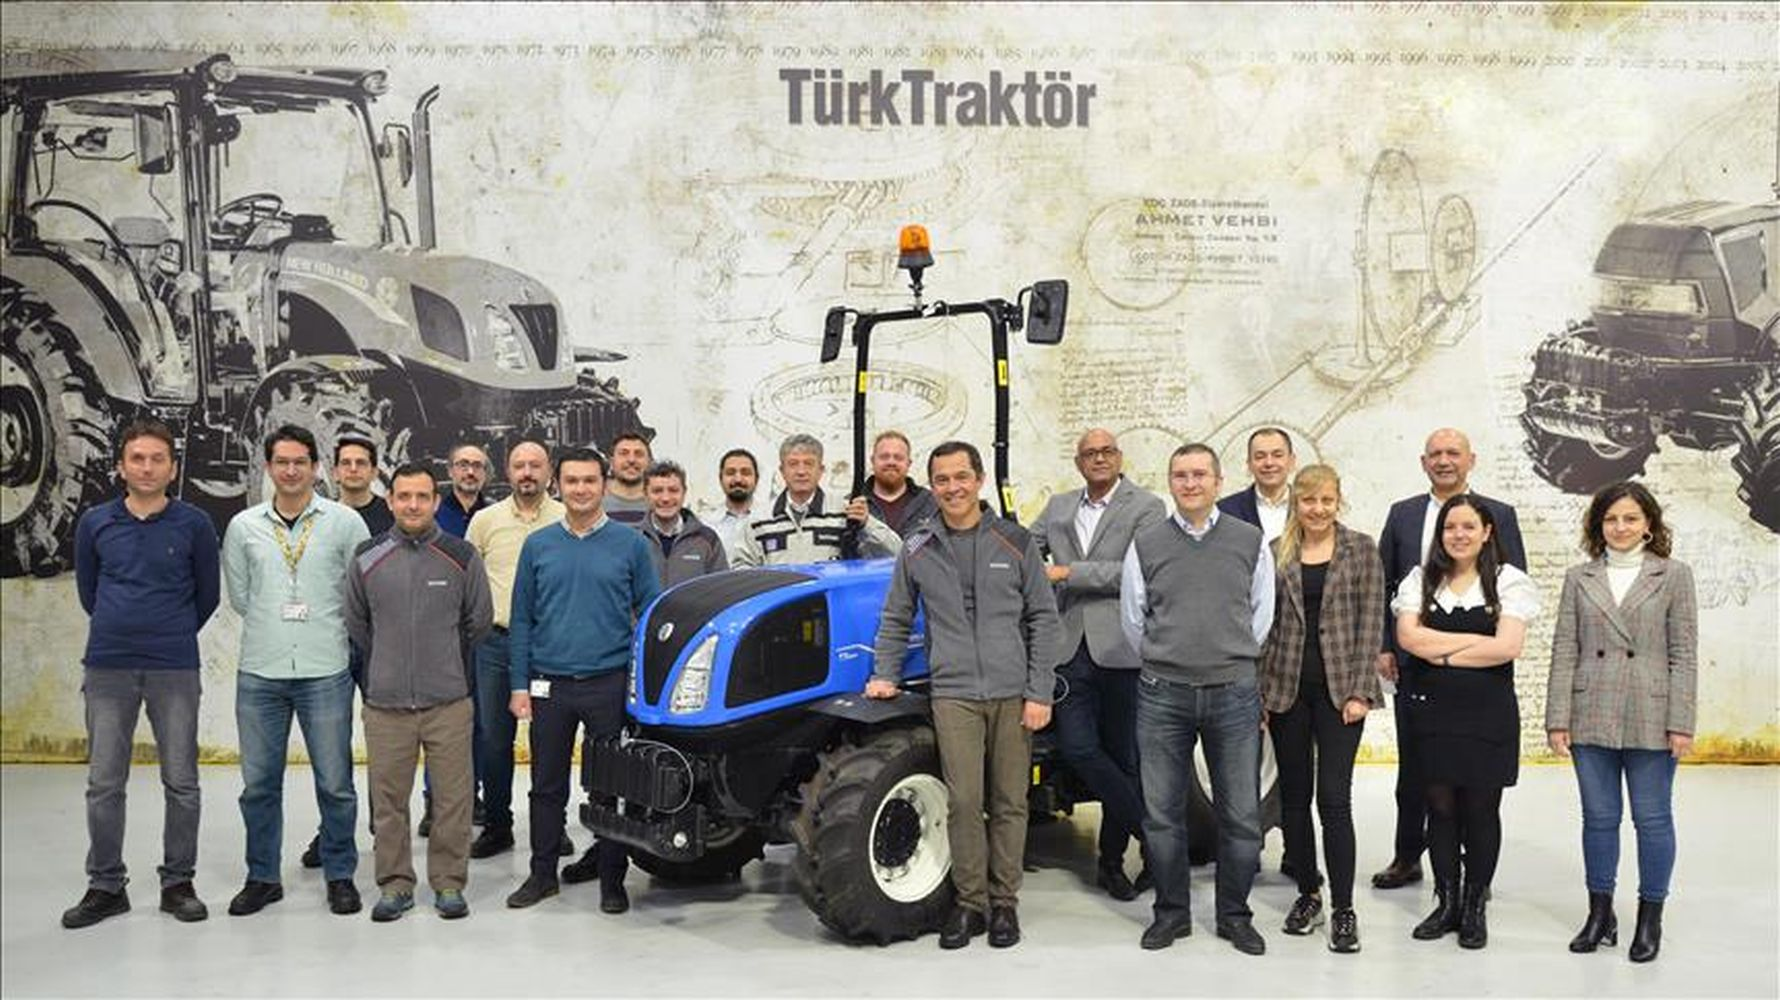 turktraktor has started the export of a brand new tractor